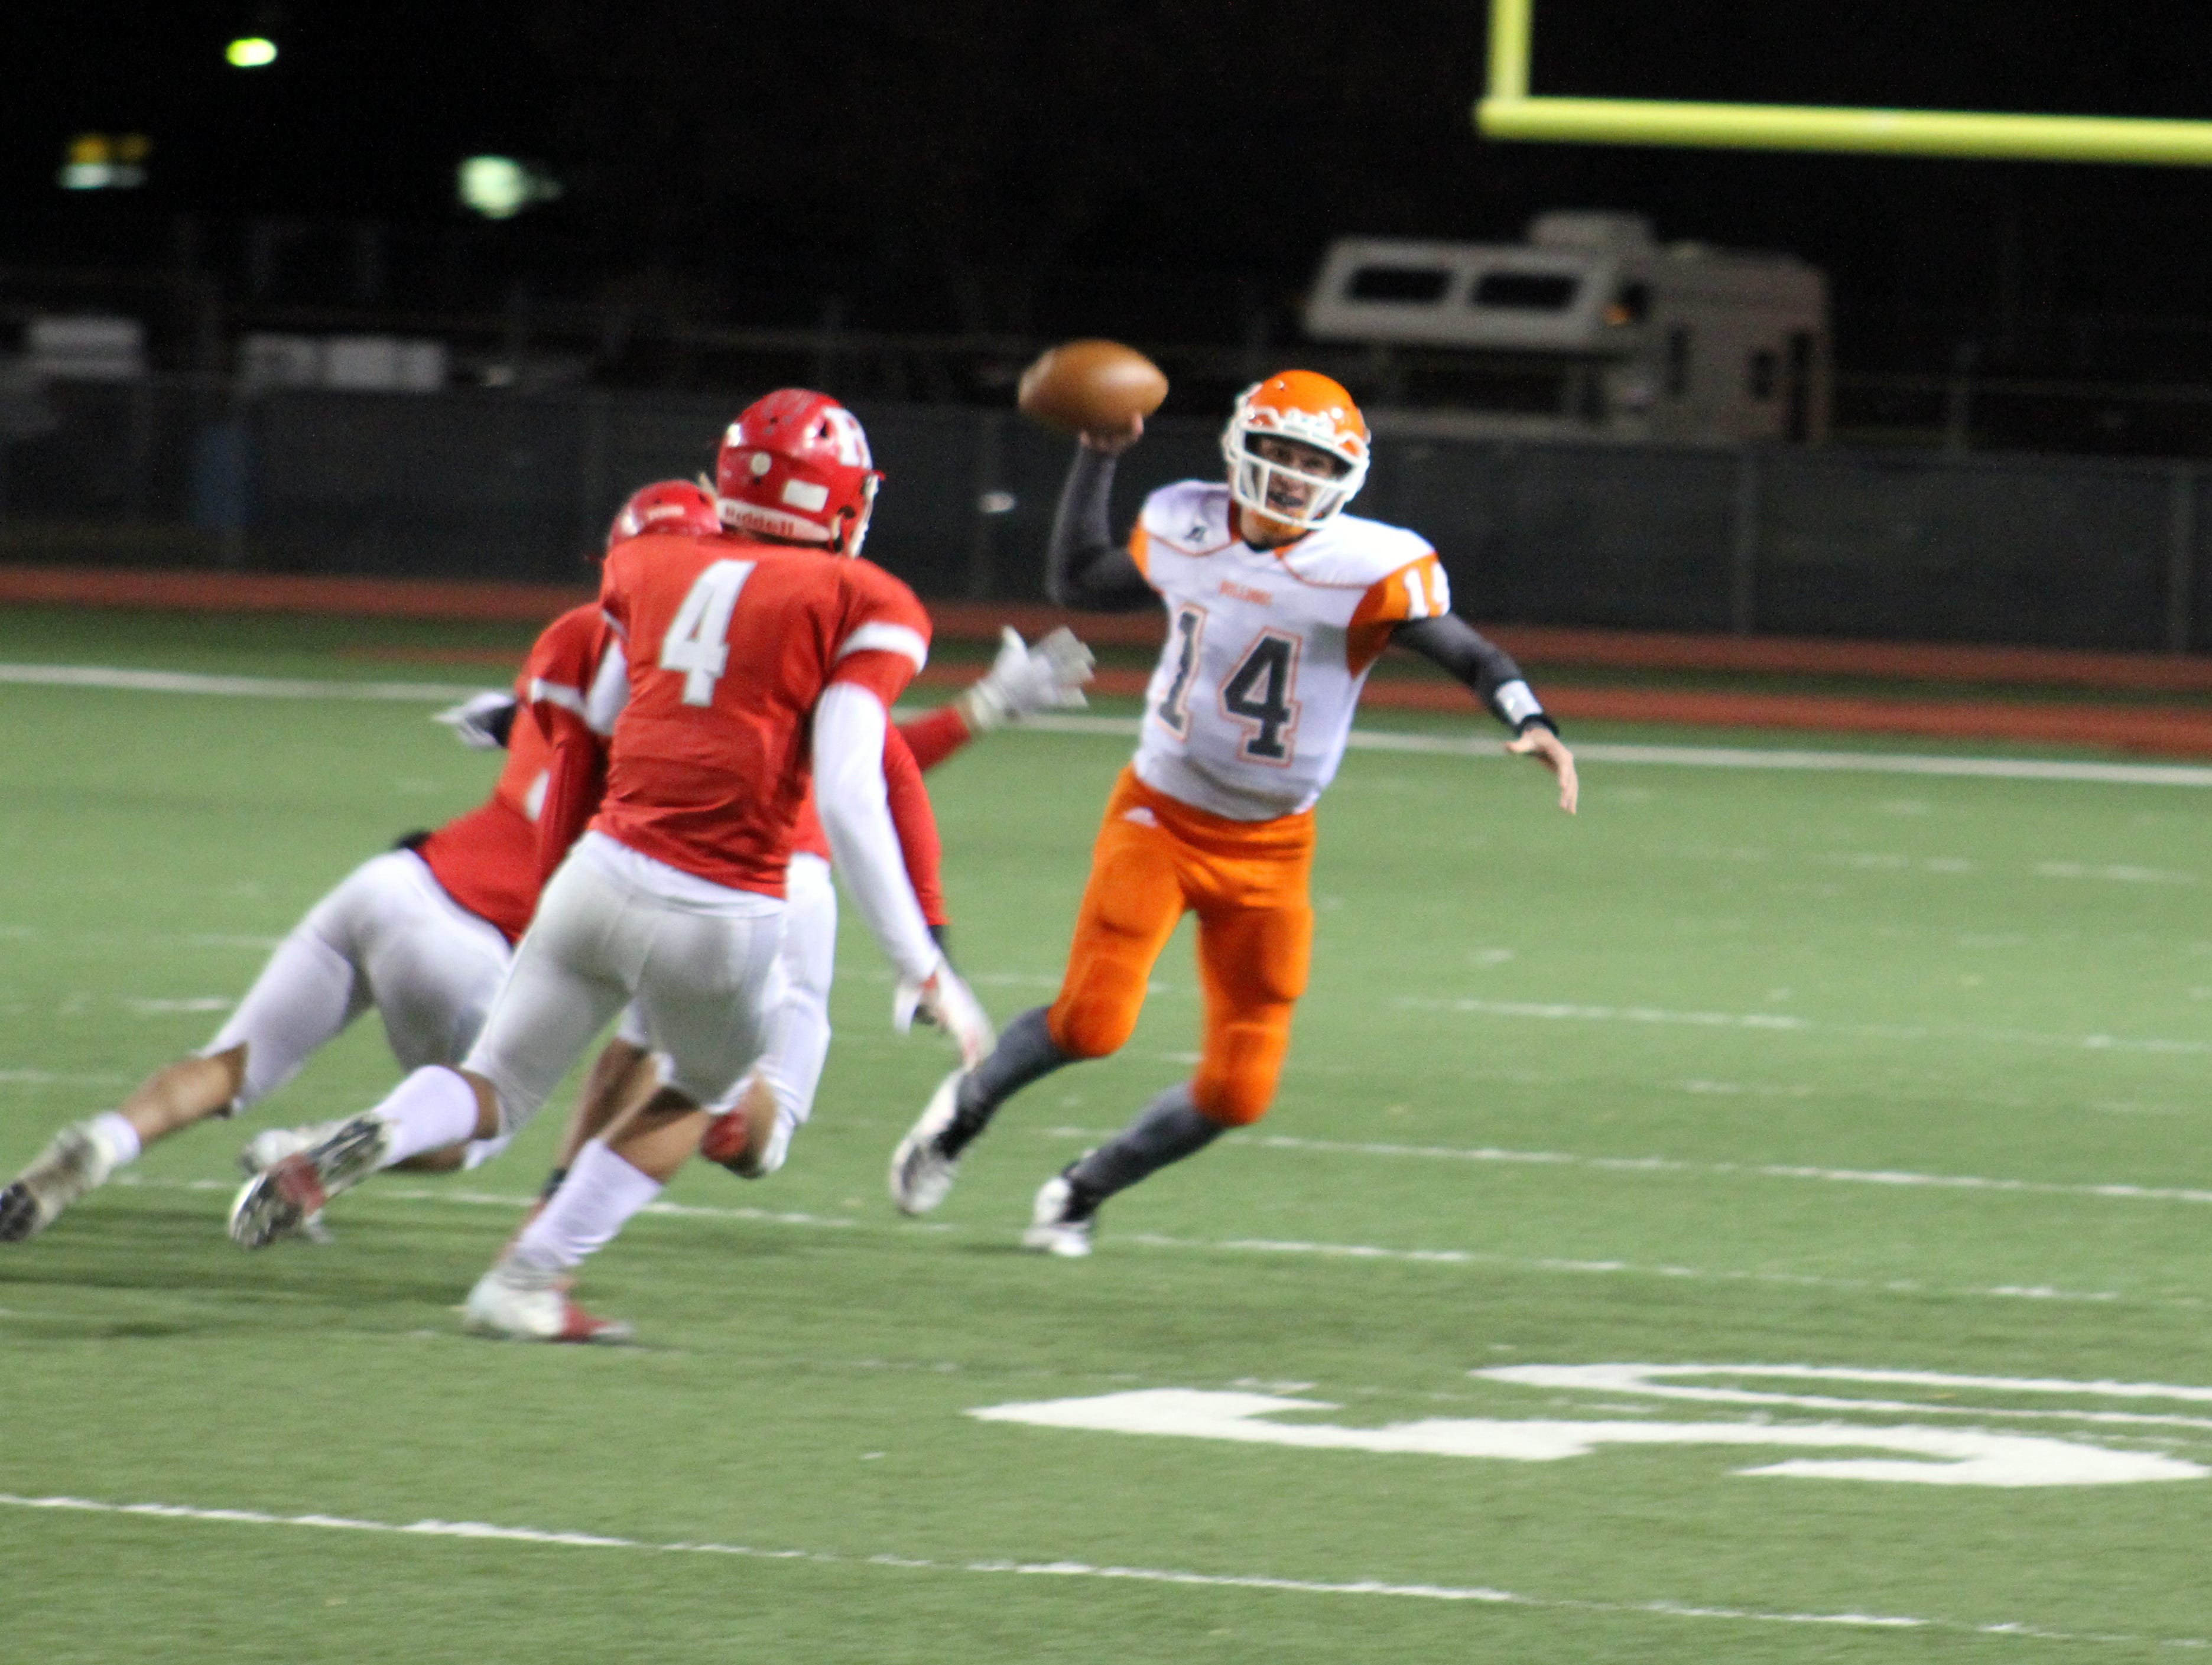 Artesia's Trent Taylor escapes a sack attempt during Friday's Class 5A semifinal game. Taylor finished with 338 passing yards, four touchdowns and one interception.